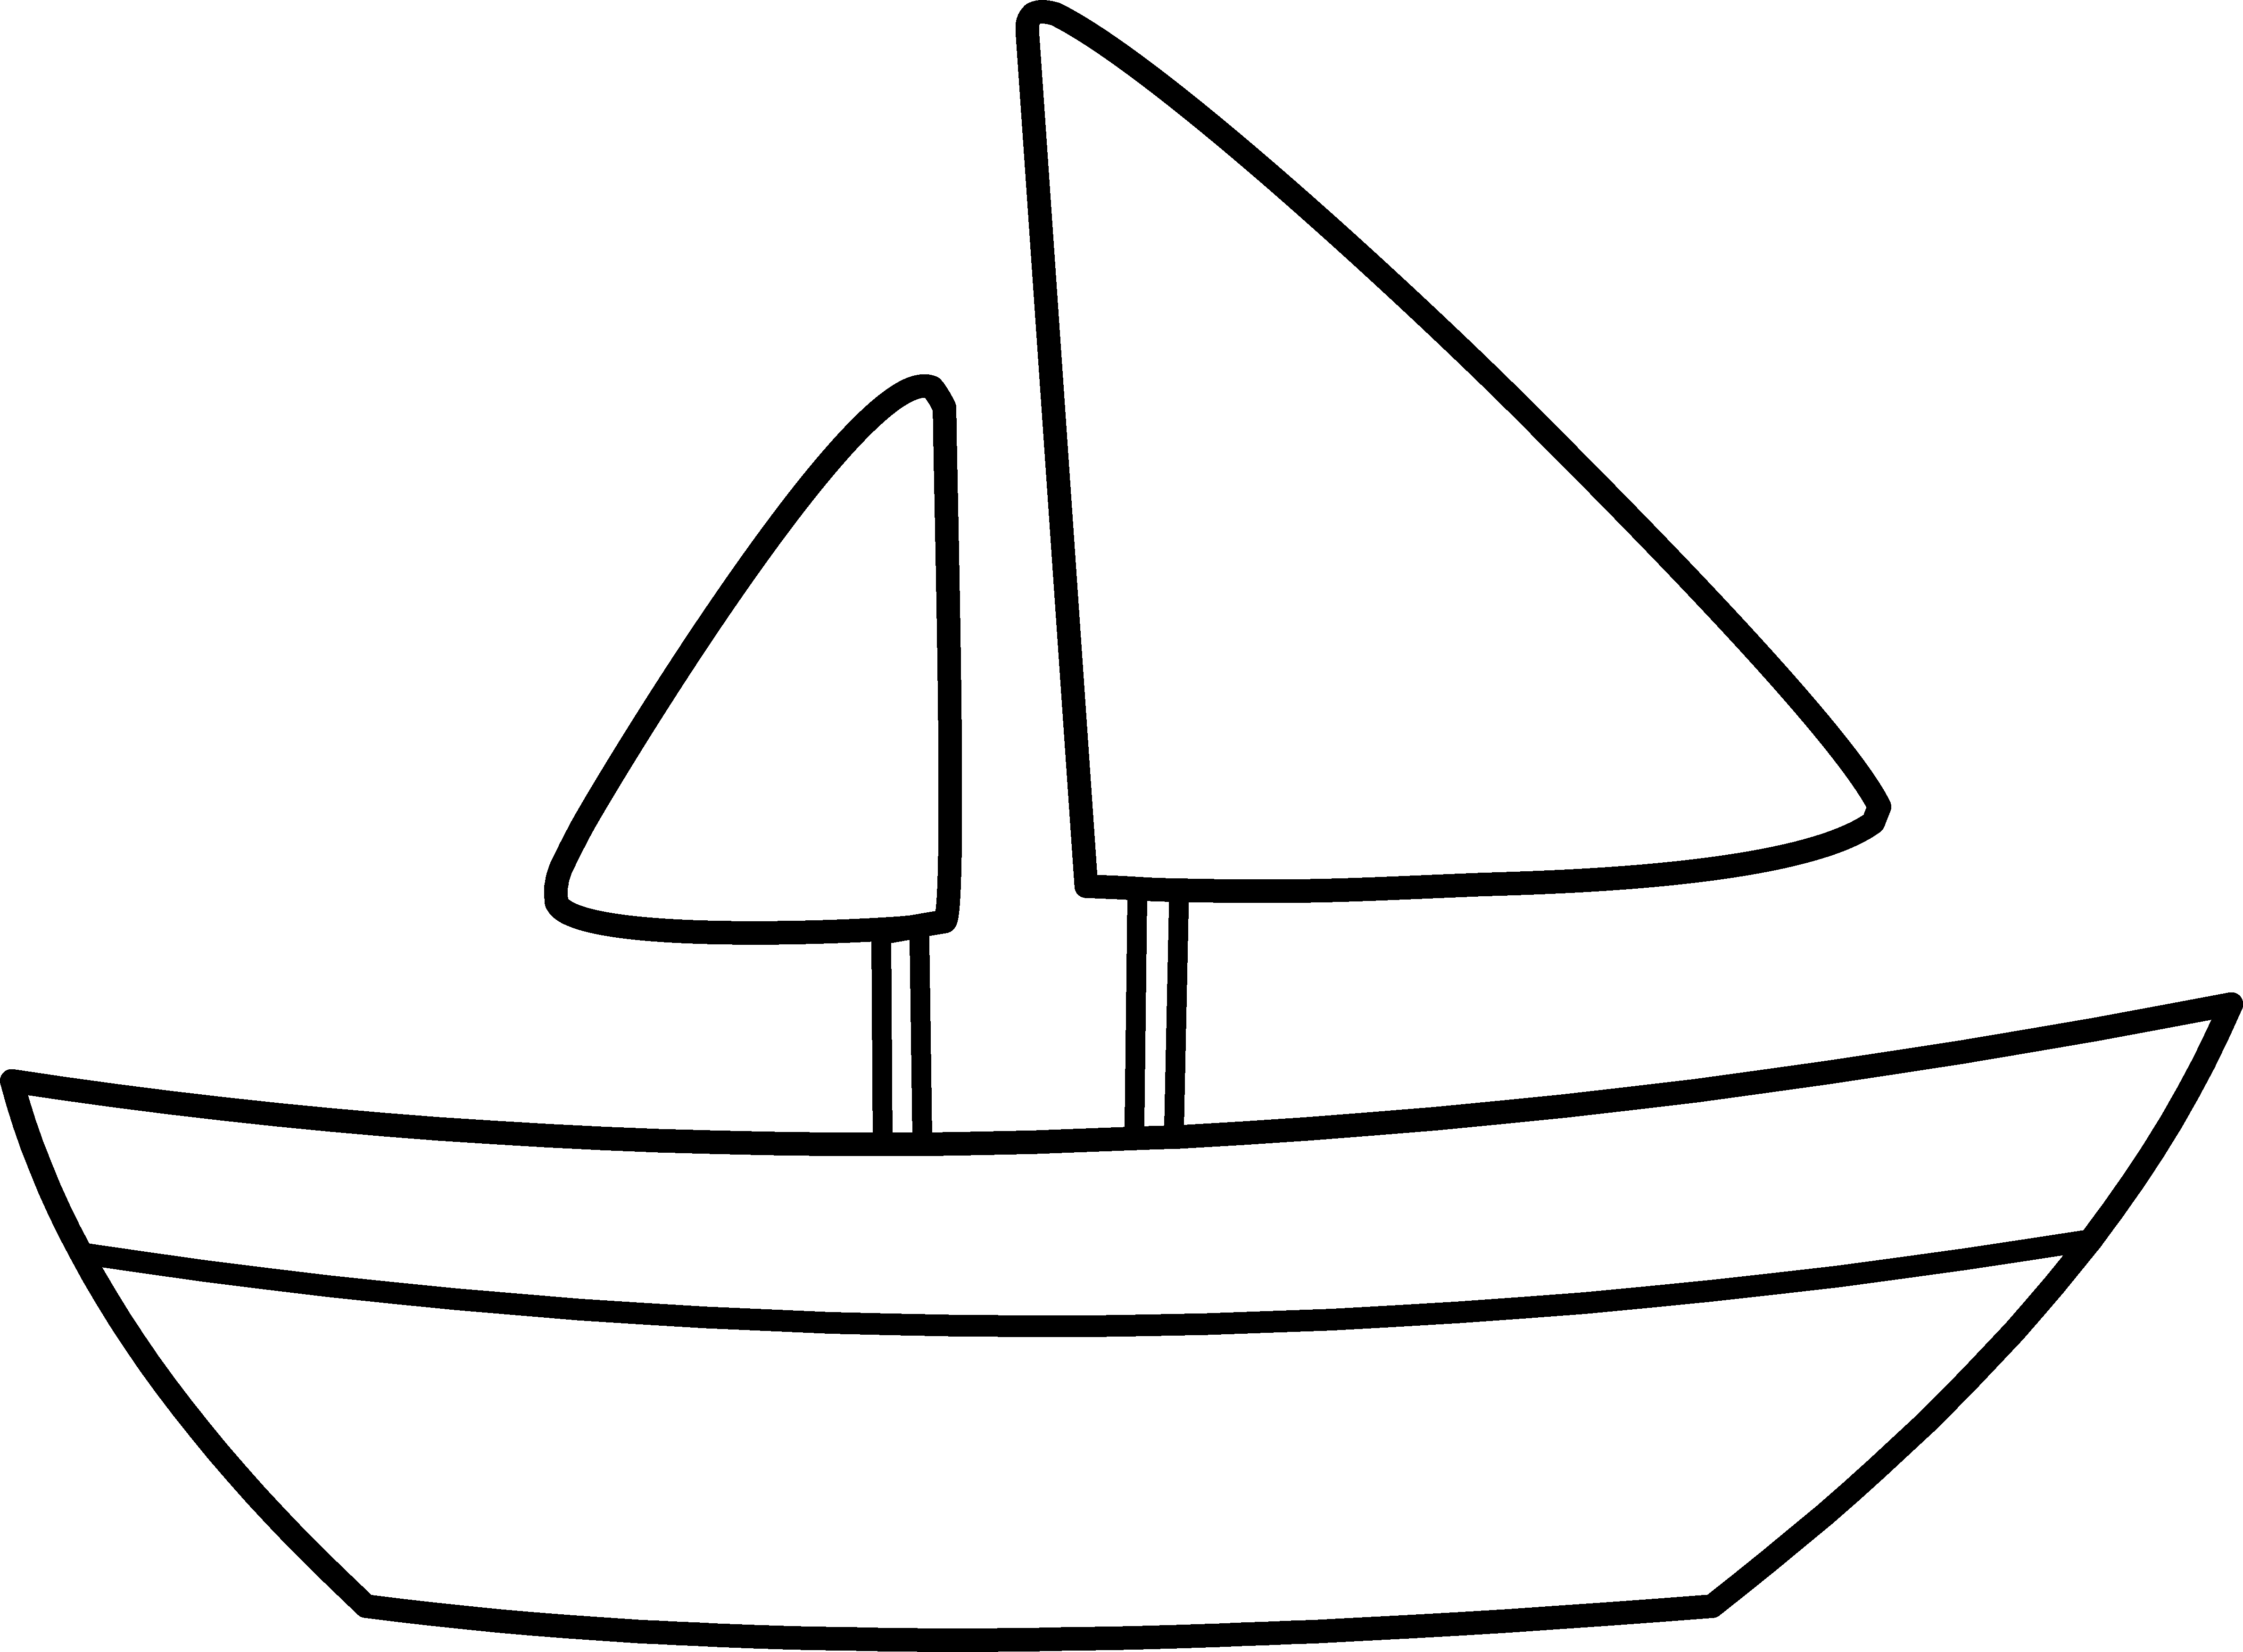 Clipart book simple. Sailboat coloring page free